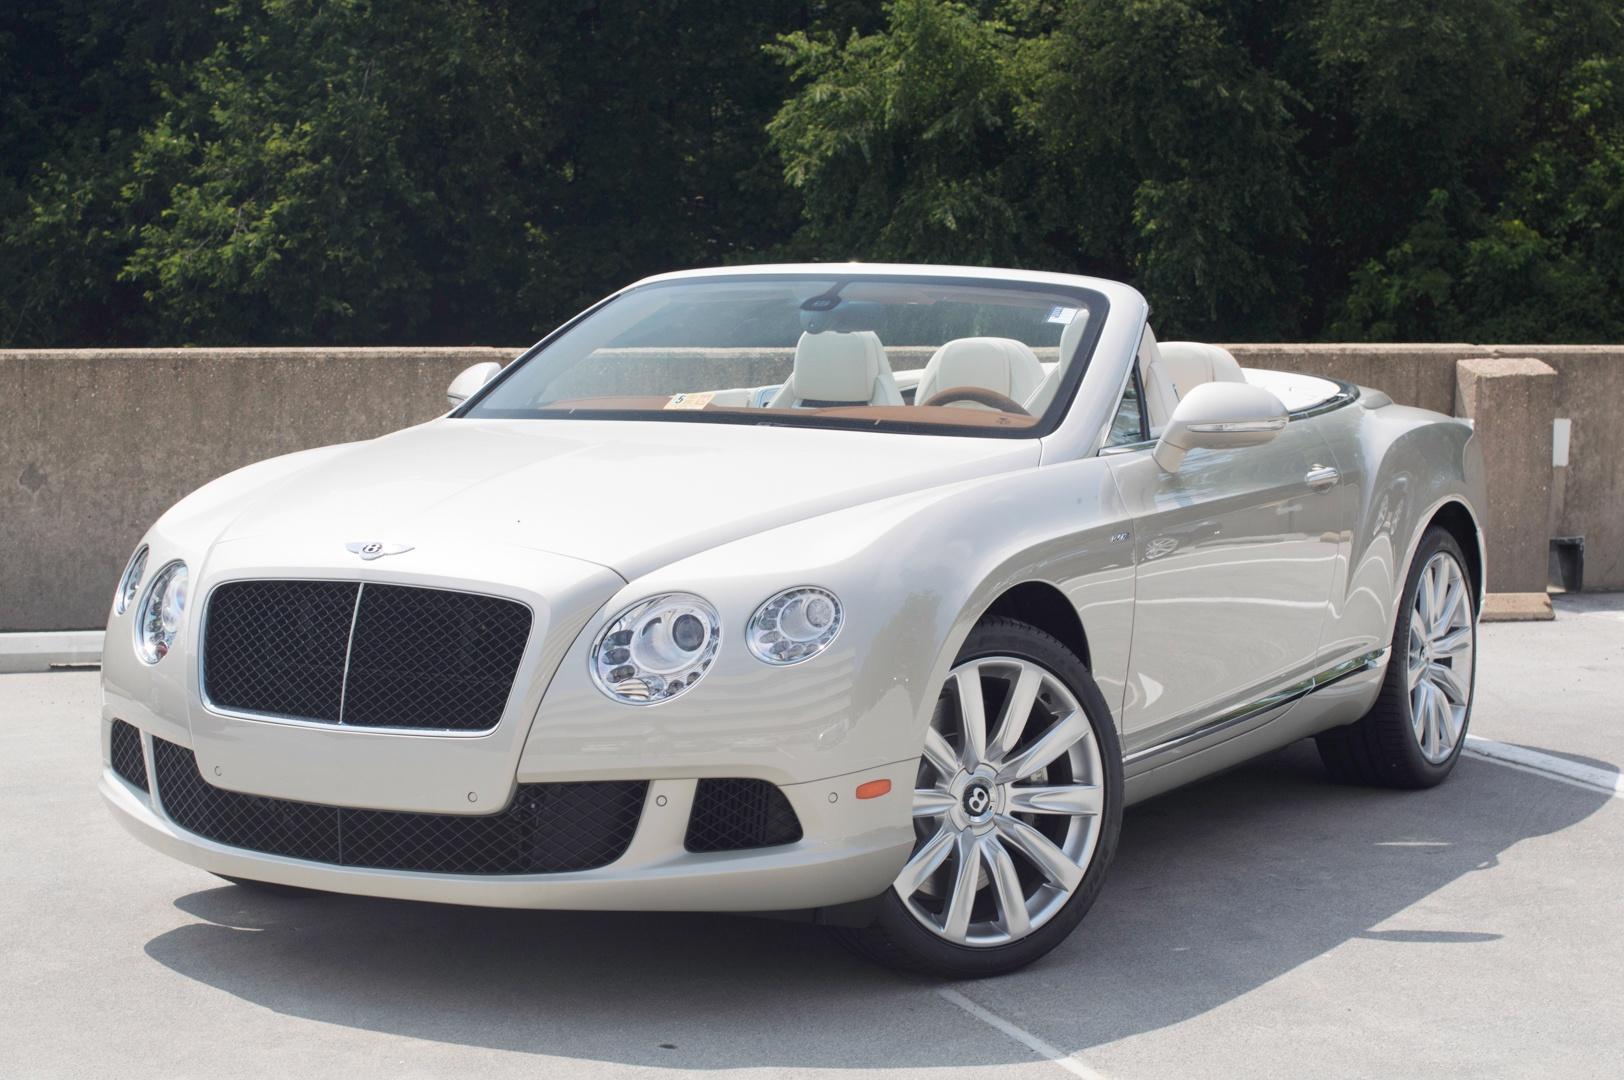 2014 bentley continental gt stock 4nc097134 for sale near vienna new 2014 bentley continental gt vienna va vanachro Images